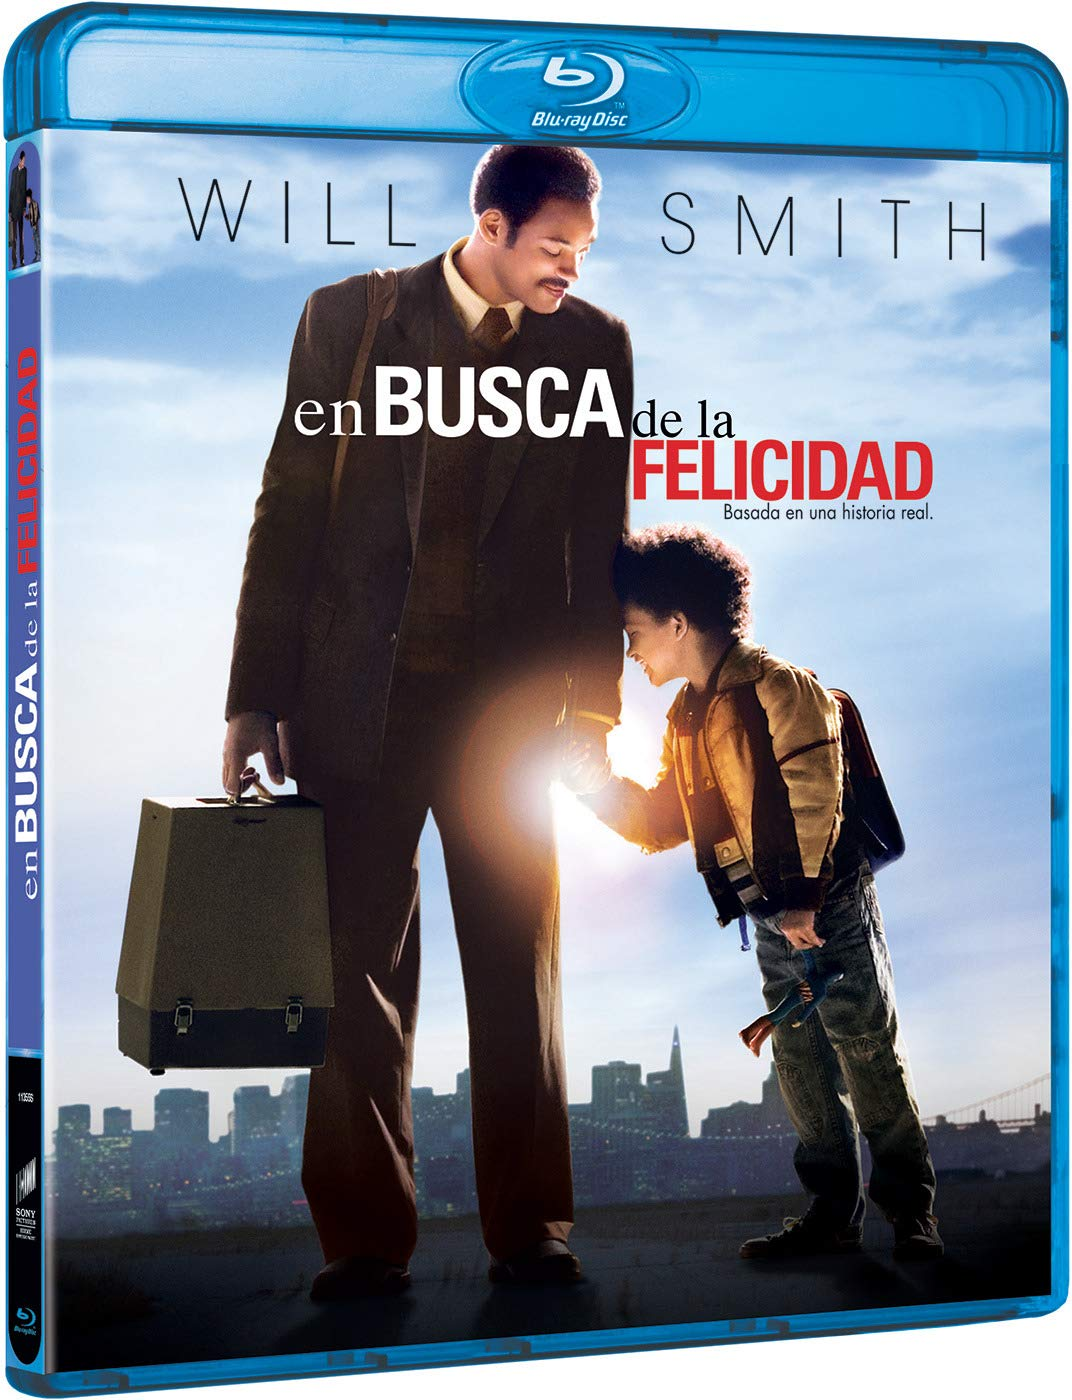 En Busca De La Felicidad Blu Ray Amazon Es Will Smith Thandie Newton Jaden Smith Gabriele Muccino Will Smith Thandie Newton Columbia Pictures Corporation Overbrook Entertainment Escape Artists Cine Y Series Tv